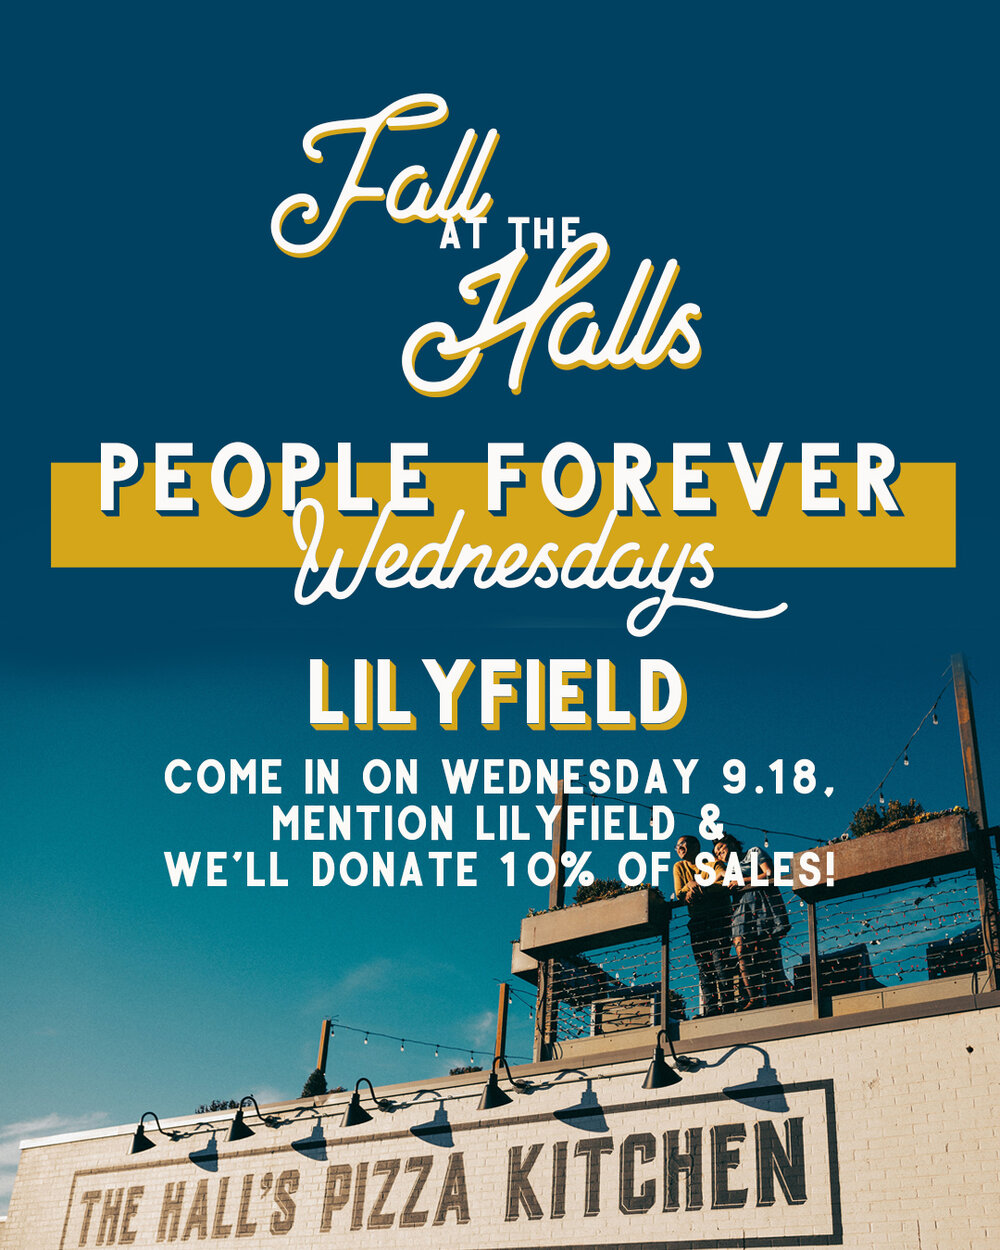 PEOPLE FOREVER - post - Lilyfield.jpg